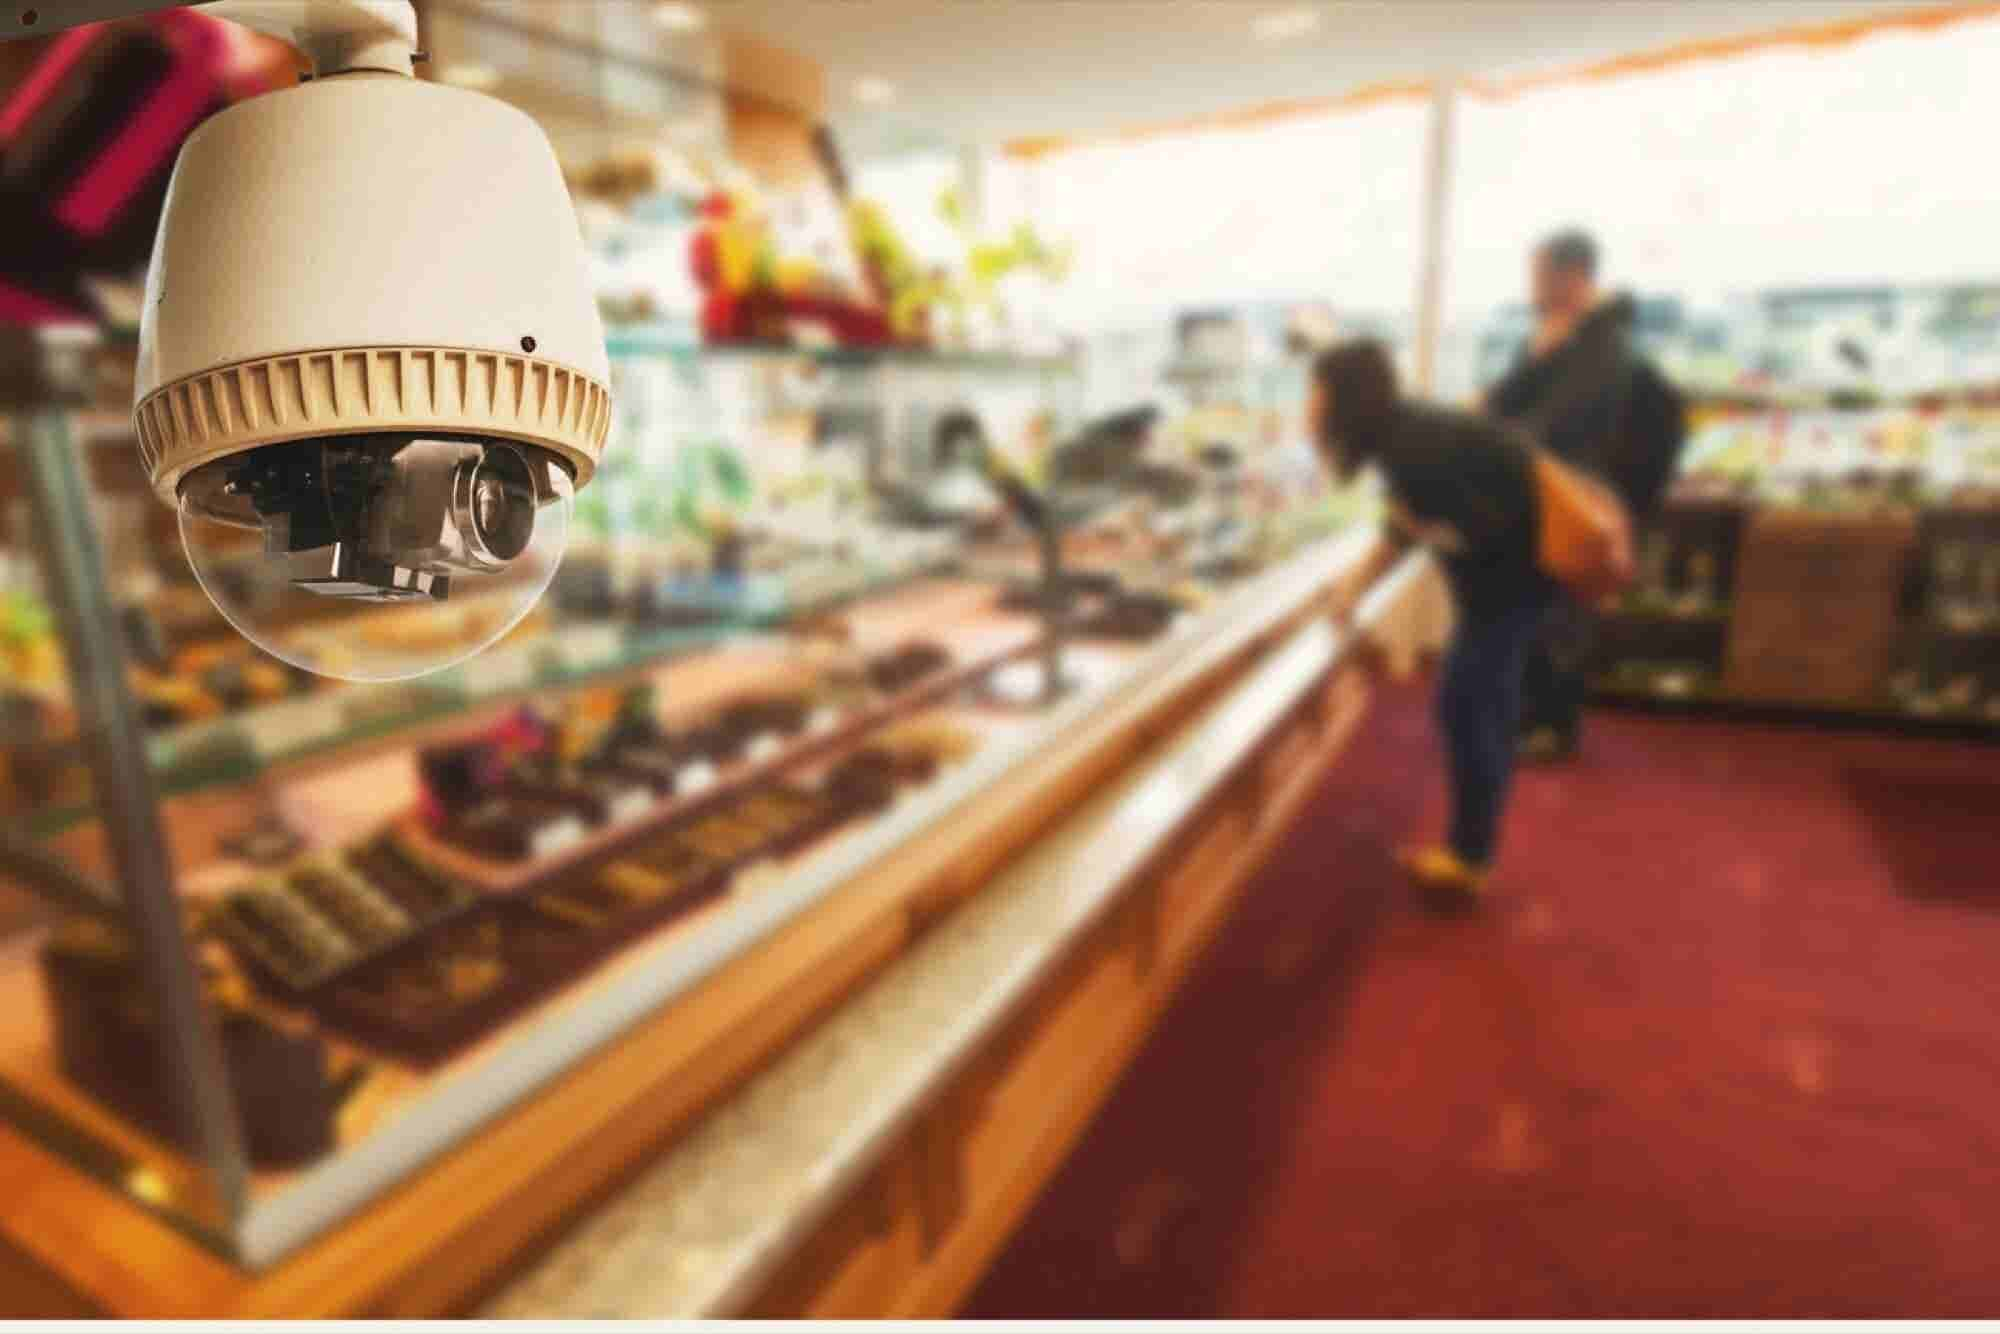 Factors Fueling the Growth of Smart Surveillance in India